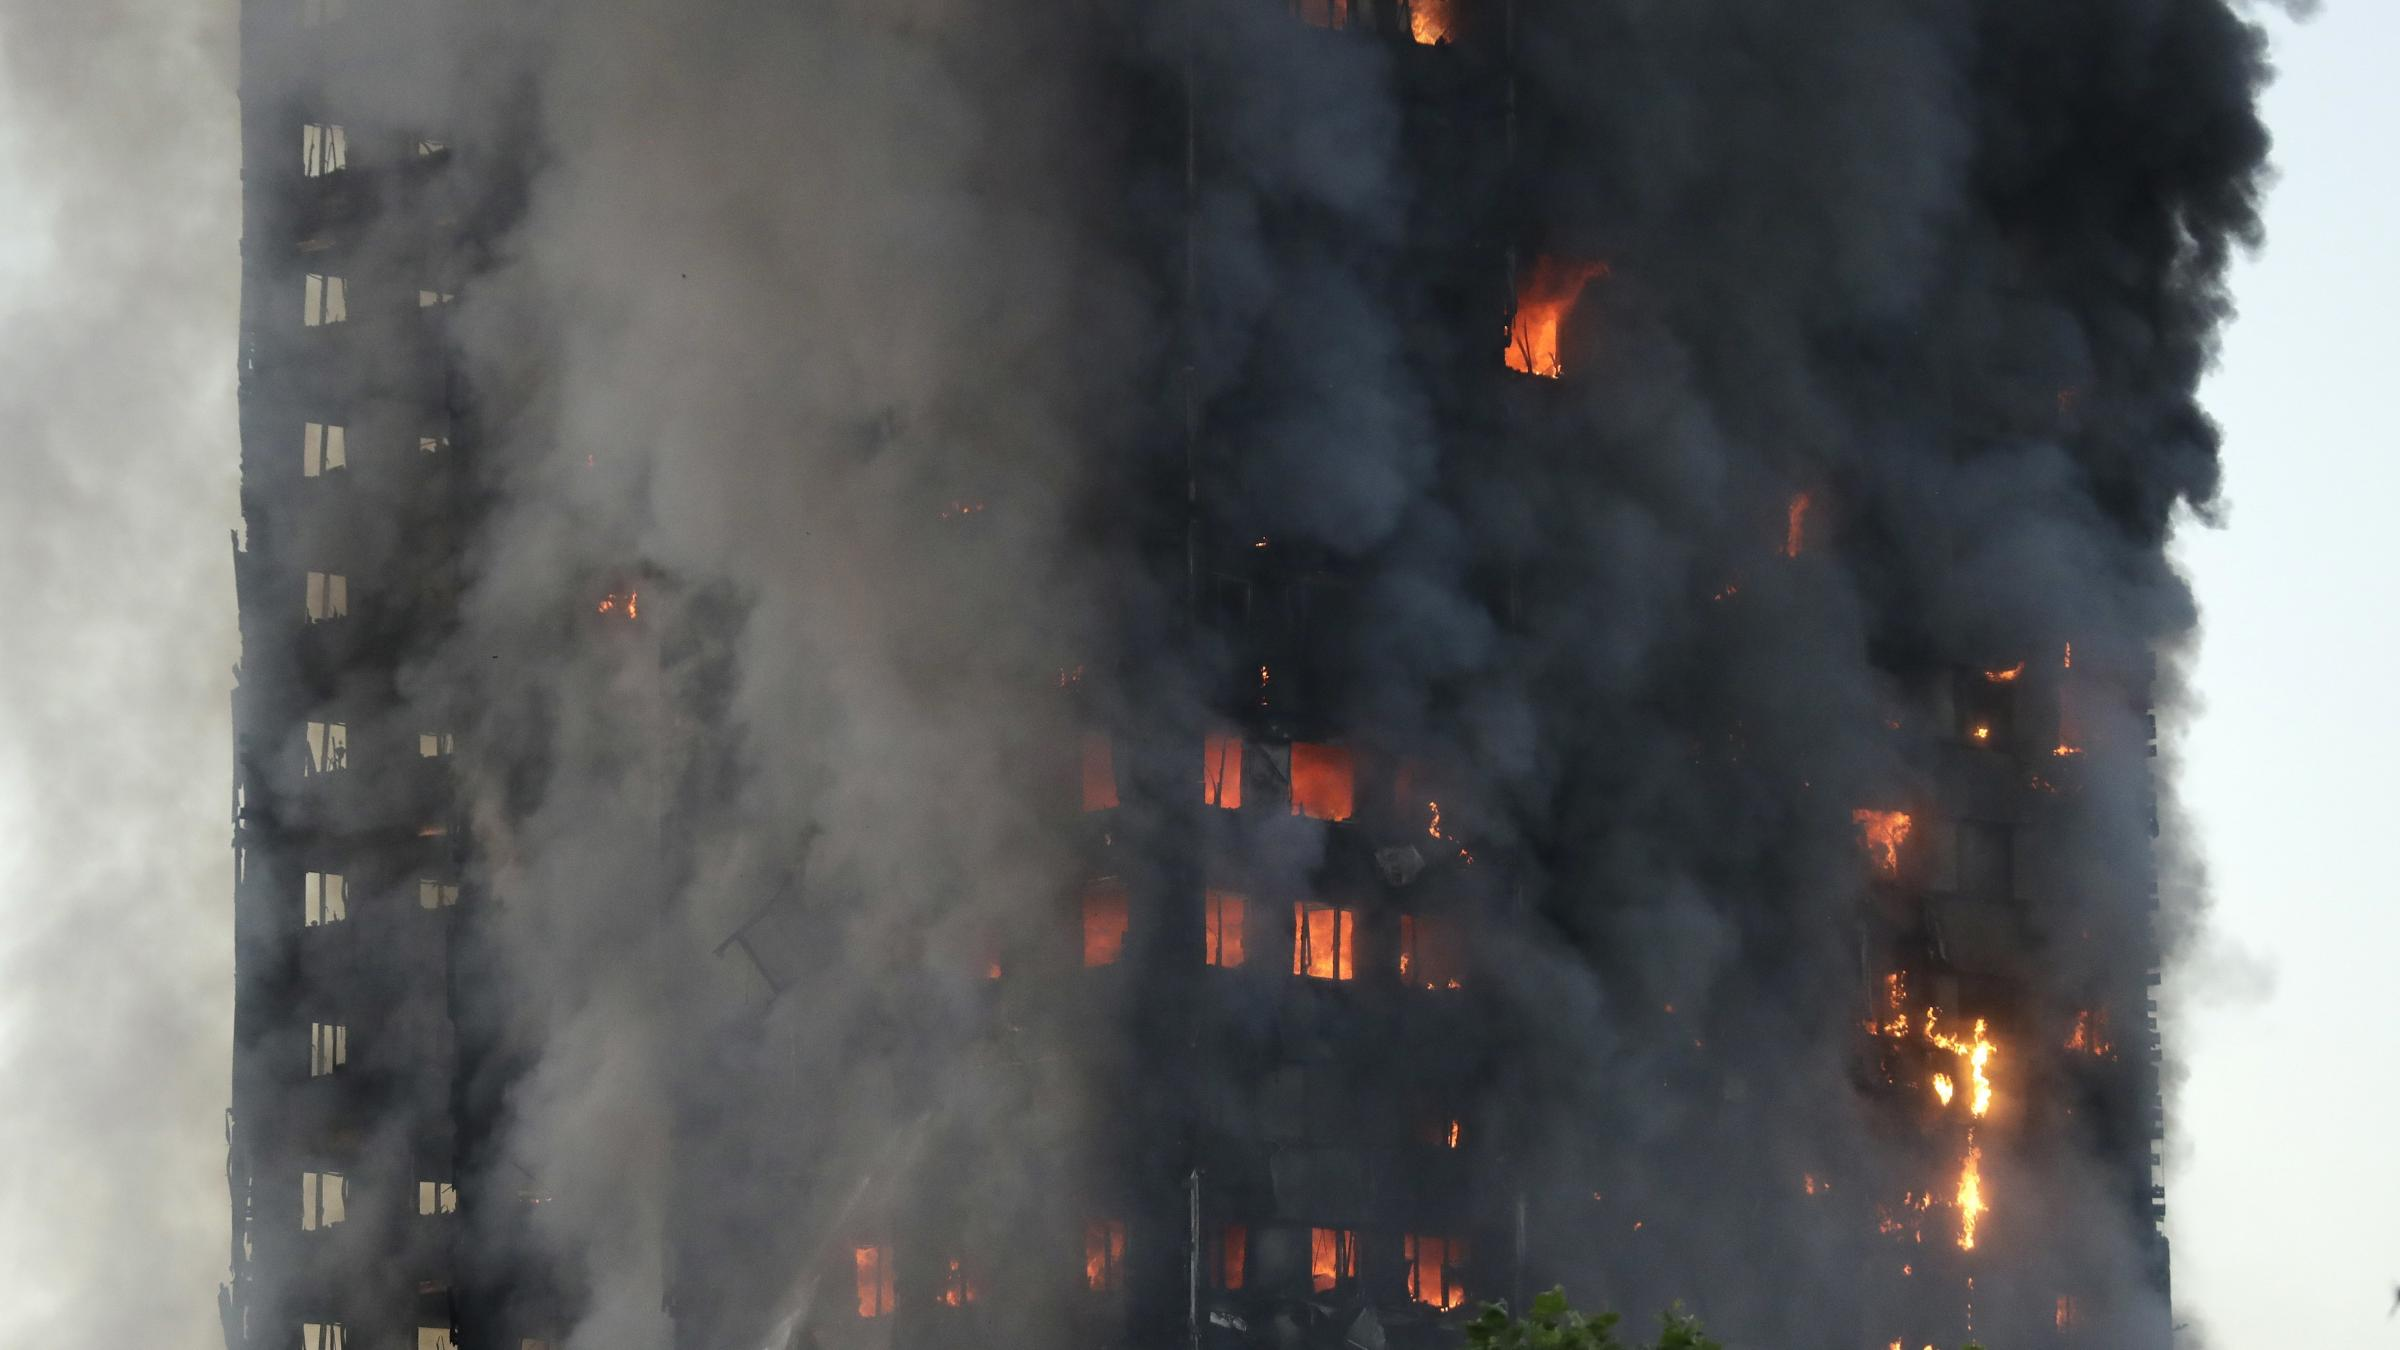 Huge fire breaks out in London apartment building